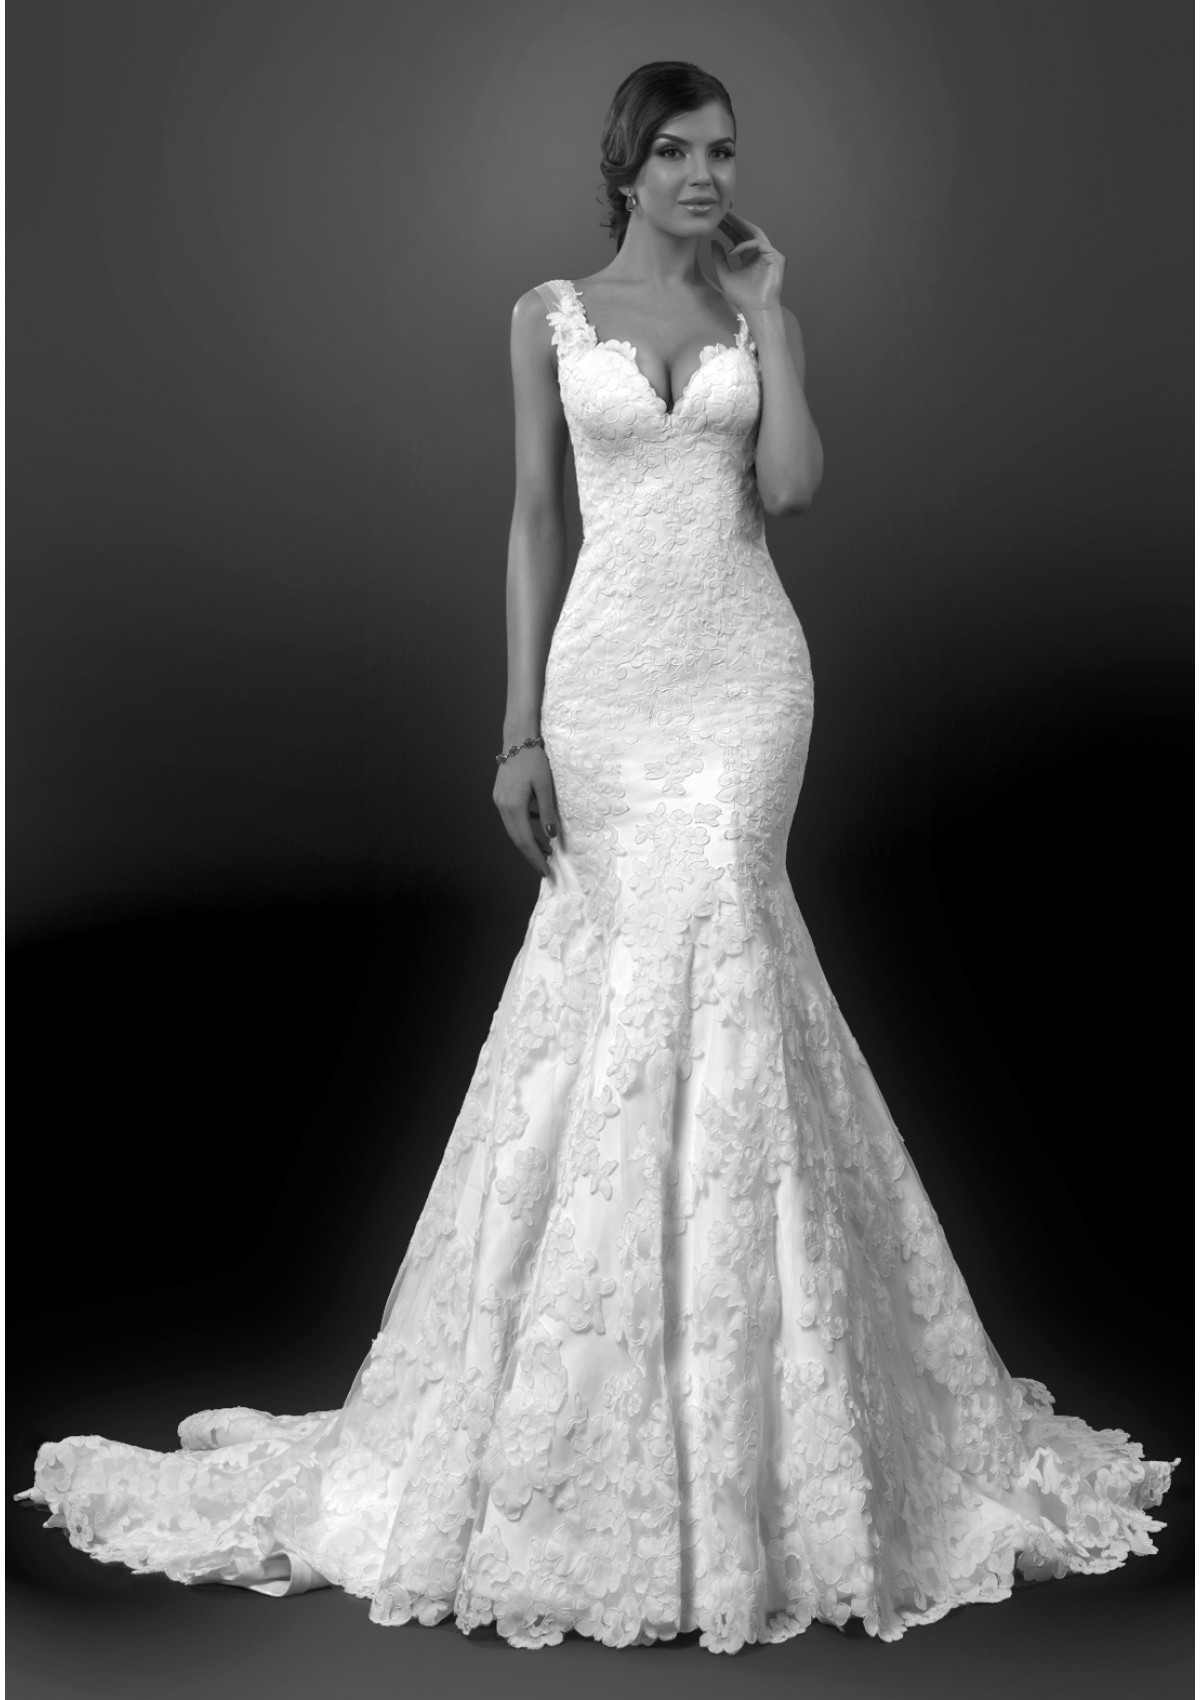 bien-savvy-wedding-dresses-12-08272014nz